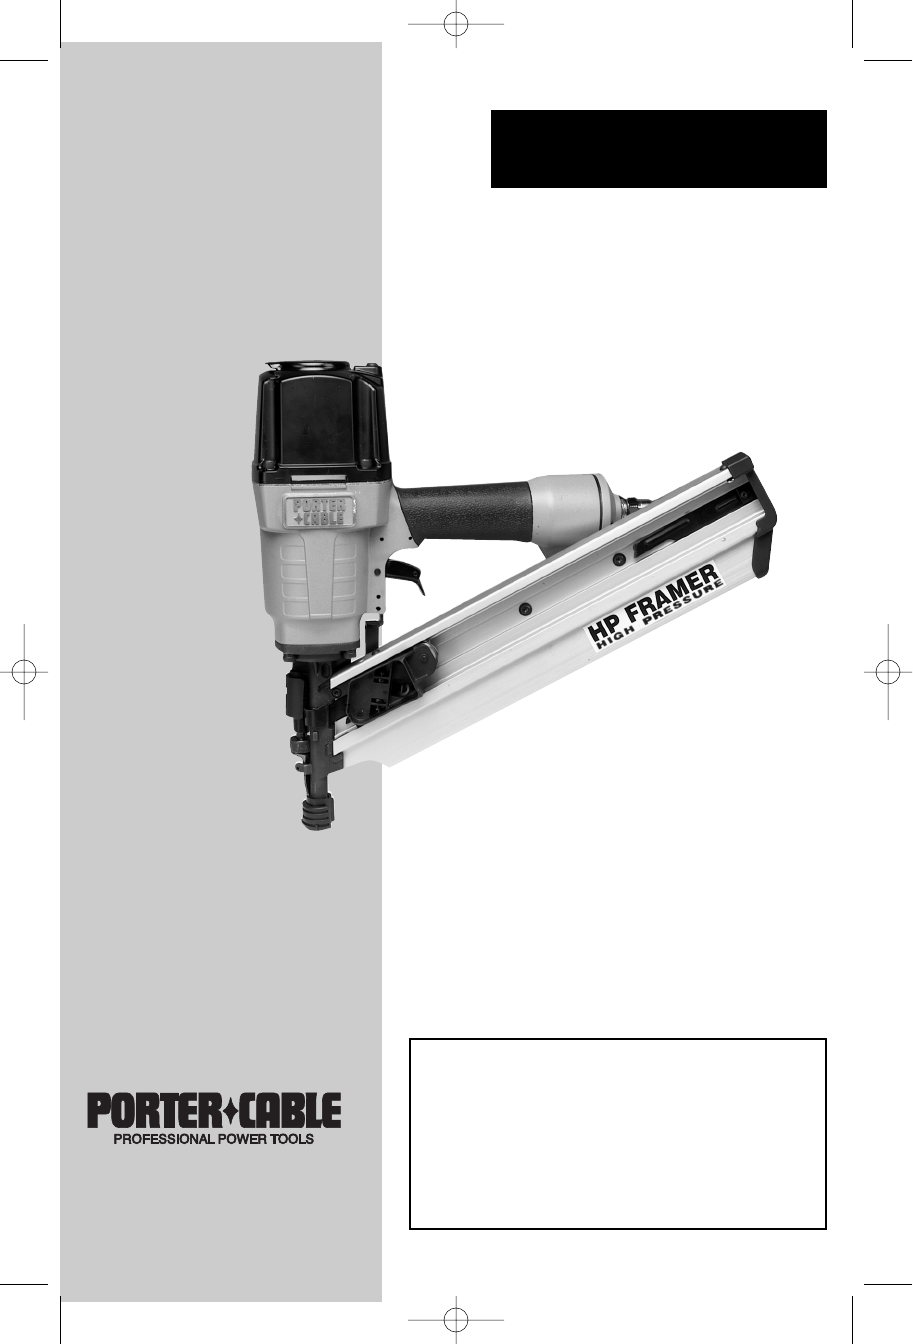 Porter Cable Framing Nail Gun